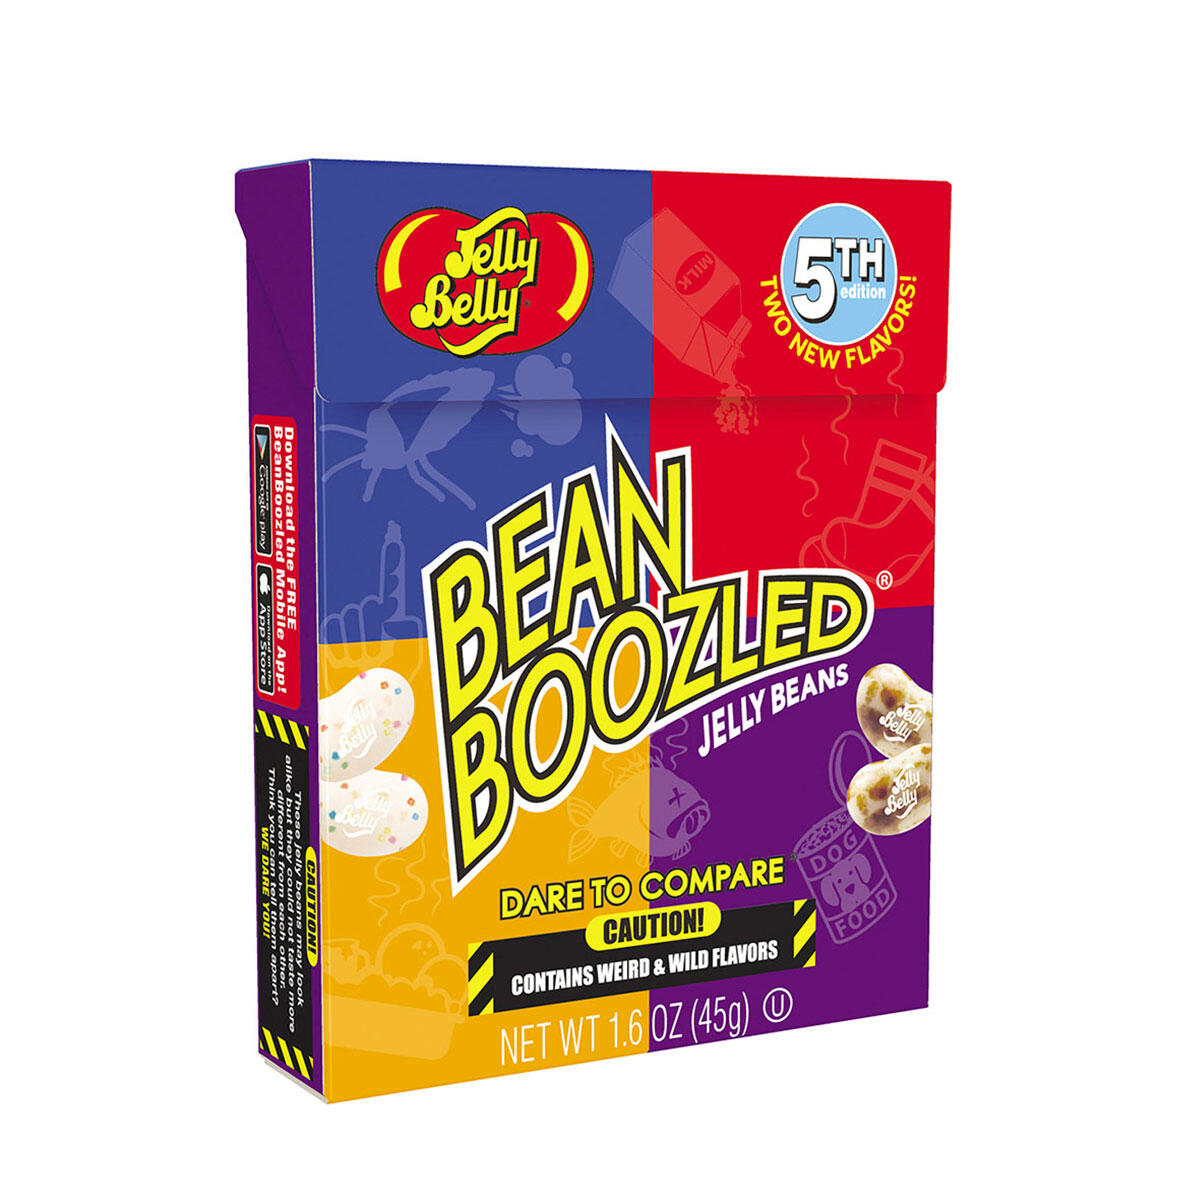 BeanBoozled Jelly Beans - 1.6 oz Box (5th edition)